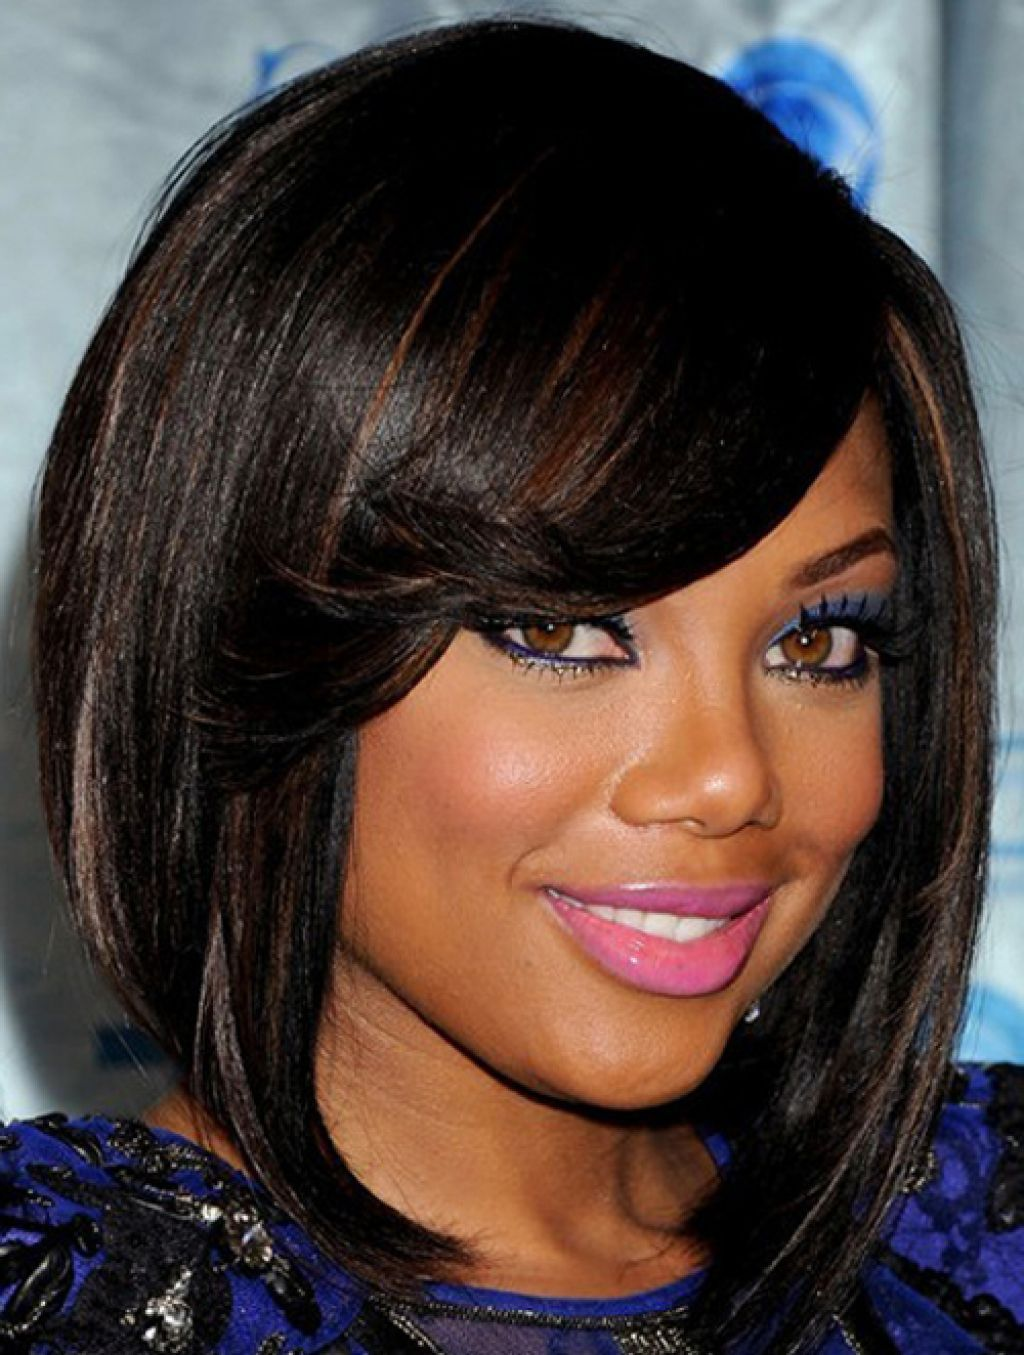 Natural hairstyles for medium length hair for black women - Short Black Haircuts With Bangs The Side Swept Wispy Bang And